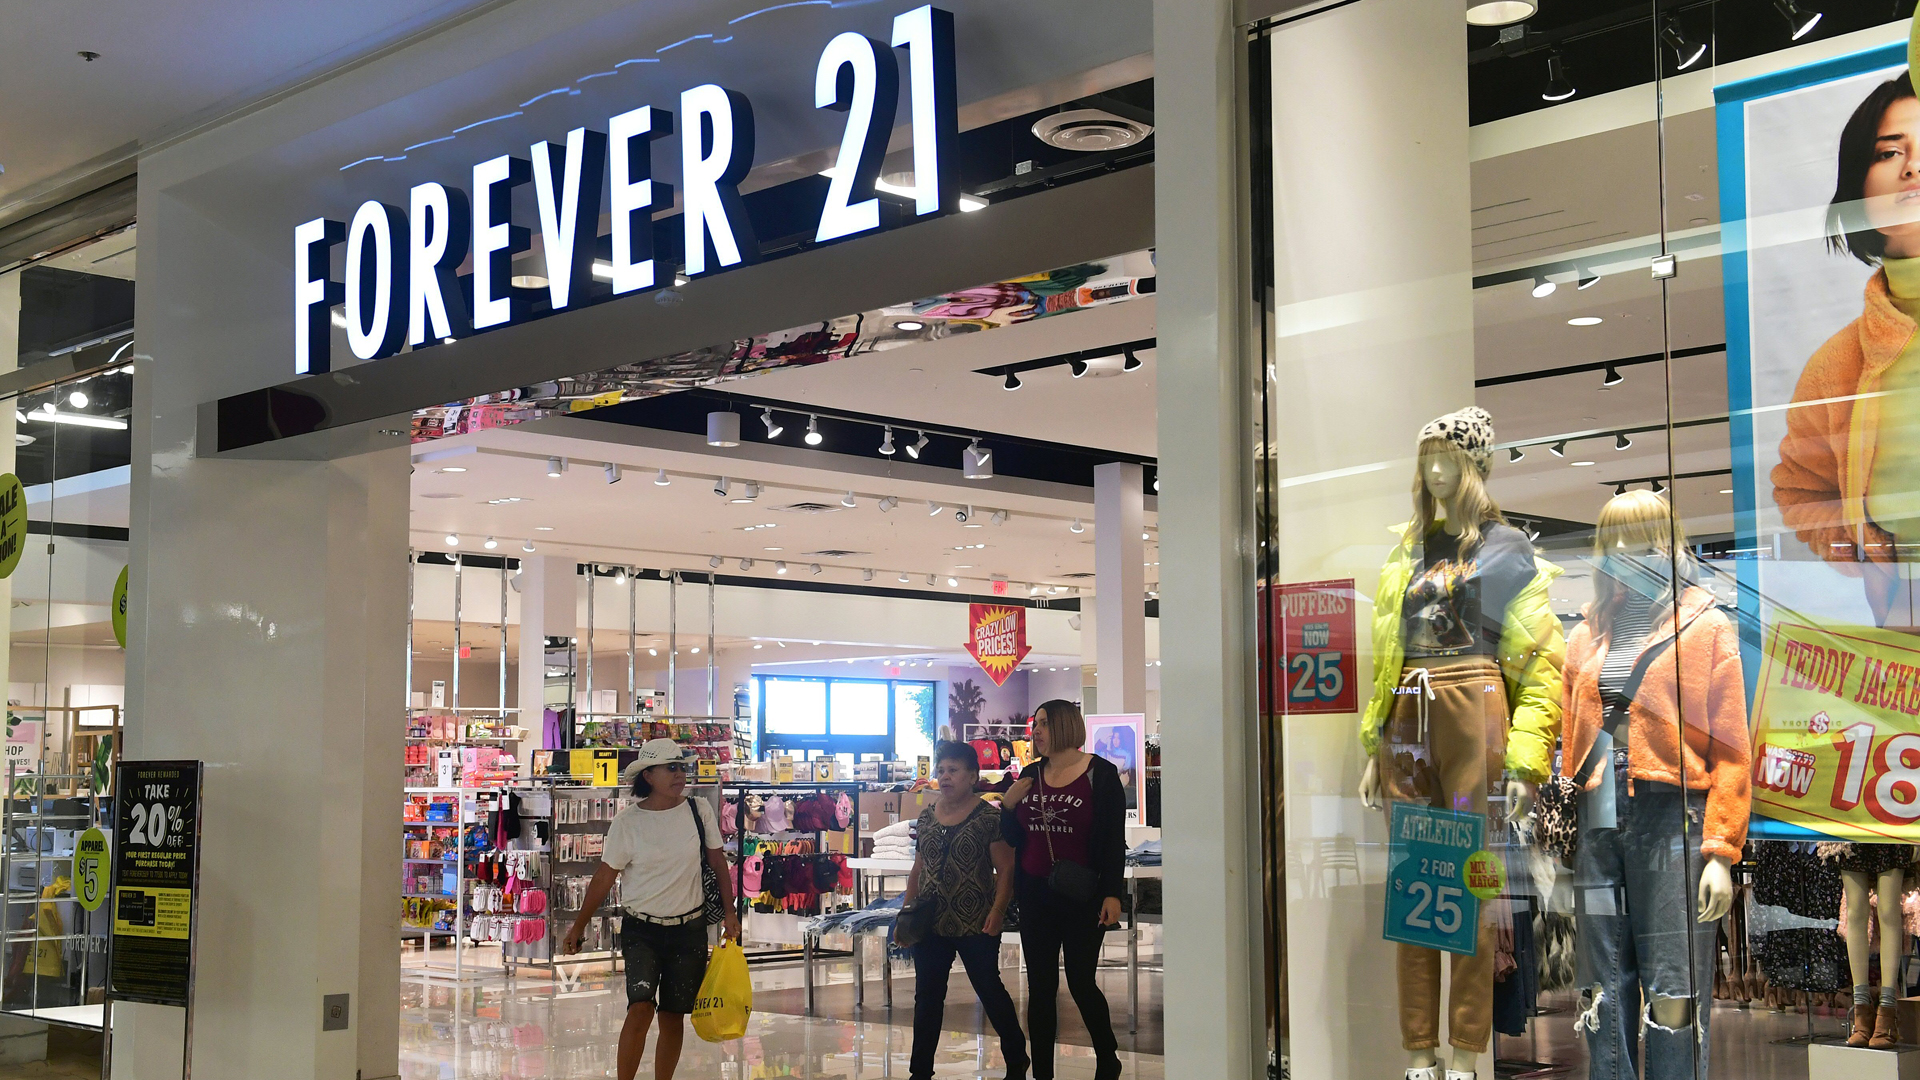 Shopper leave a Forever 21 store at a shopping mall in Los Angeles County on Sep. 30, 2019. (Credit: Frederic J. Brown/AFP/Getty Images)